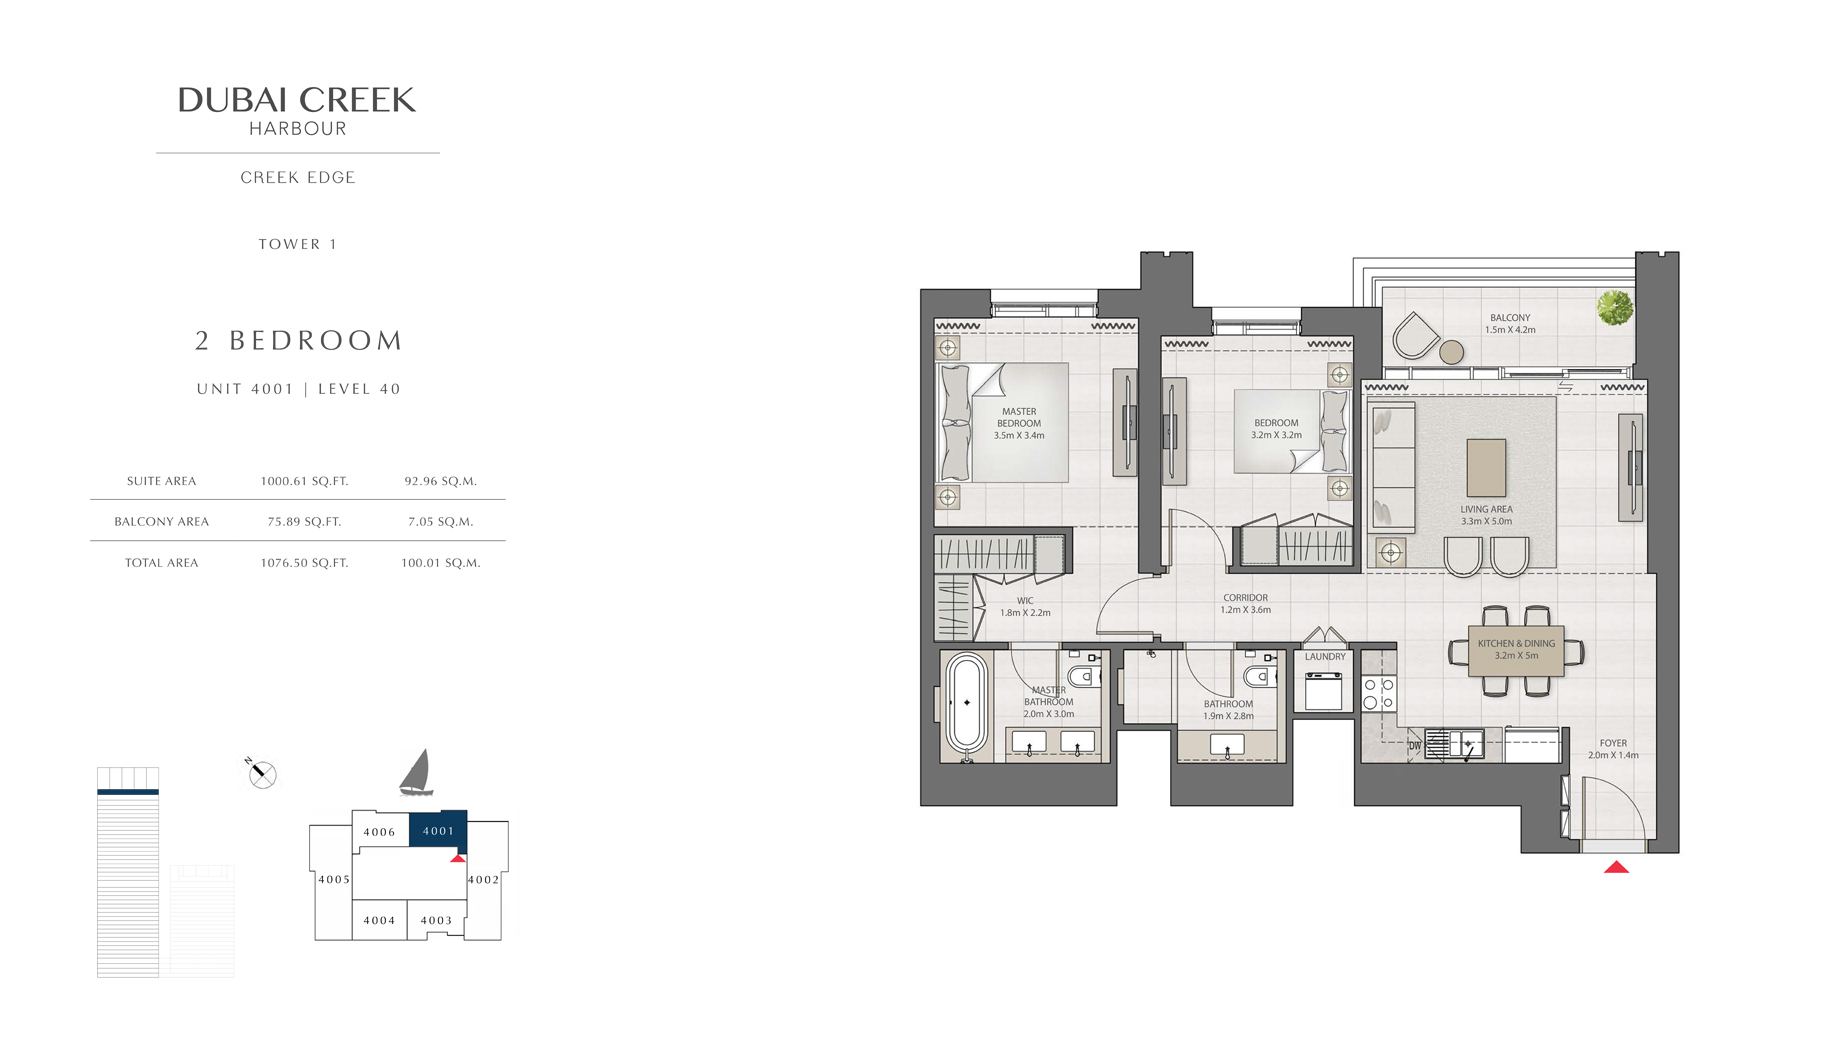 2 Bedroom Tower 1 Unit 4001 Level 40 Size 1076 sq.ft